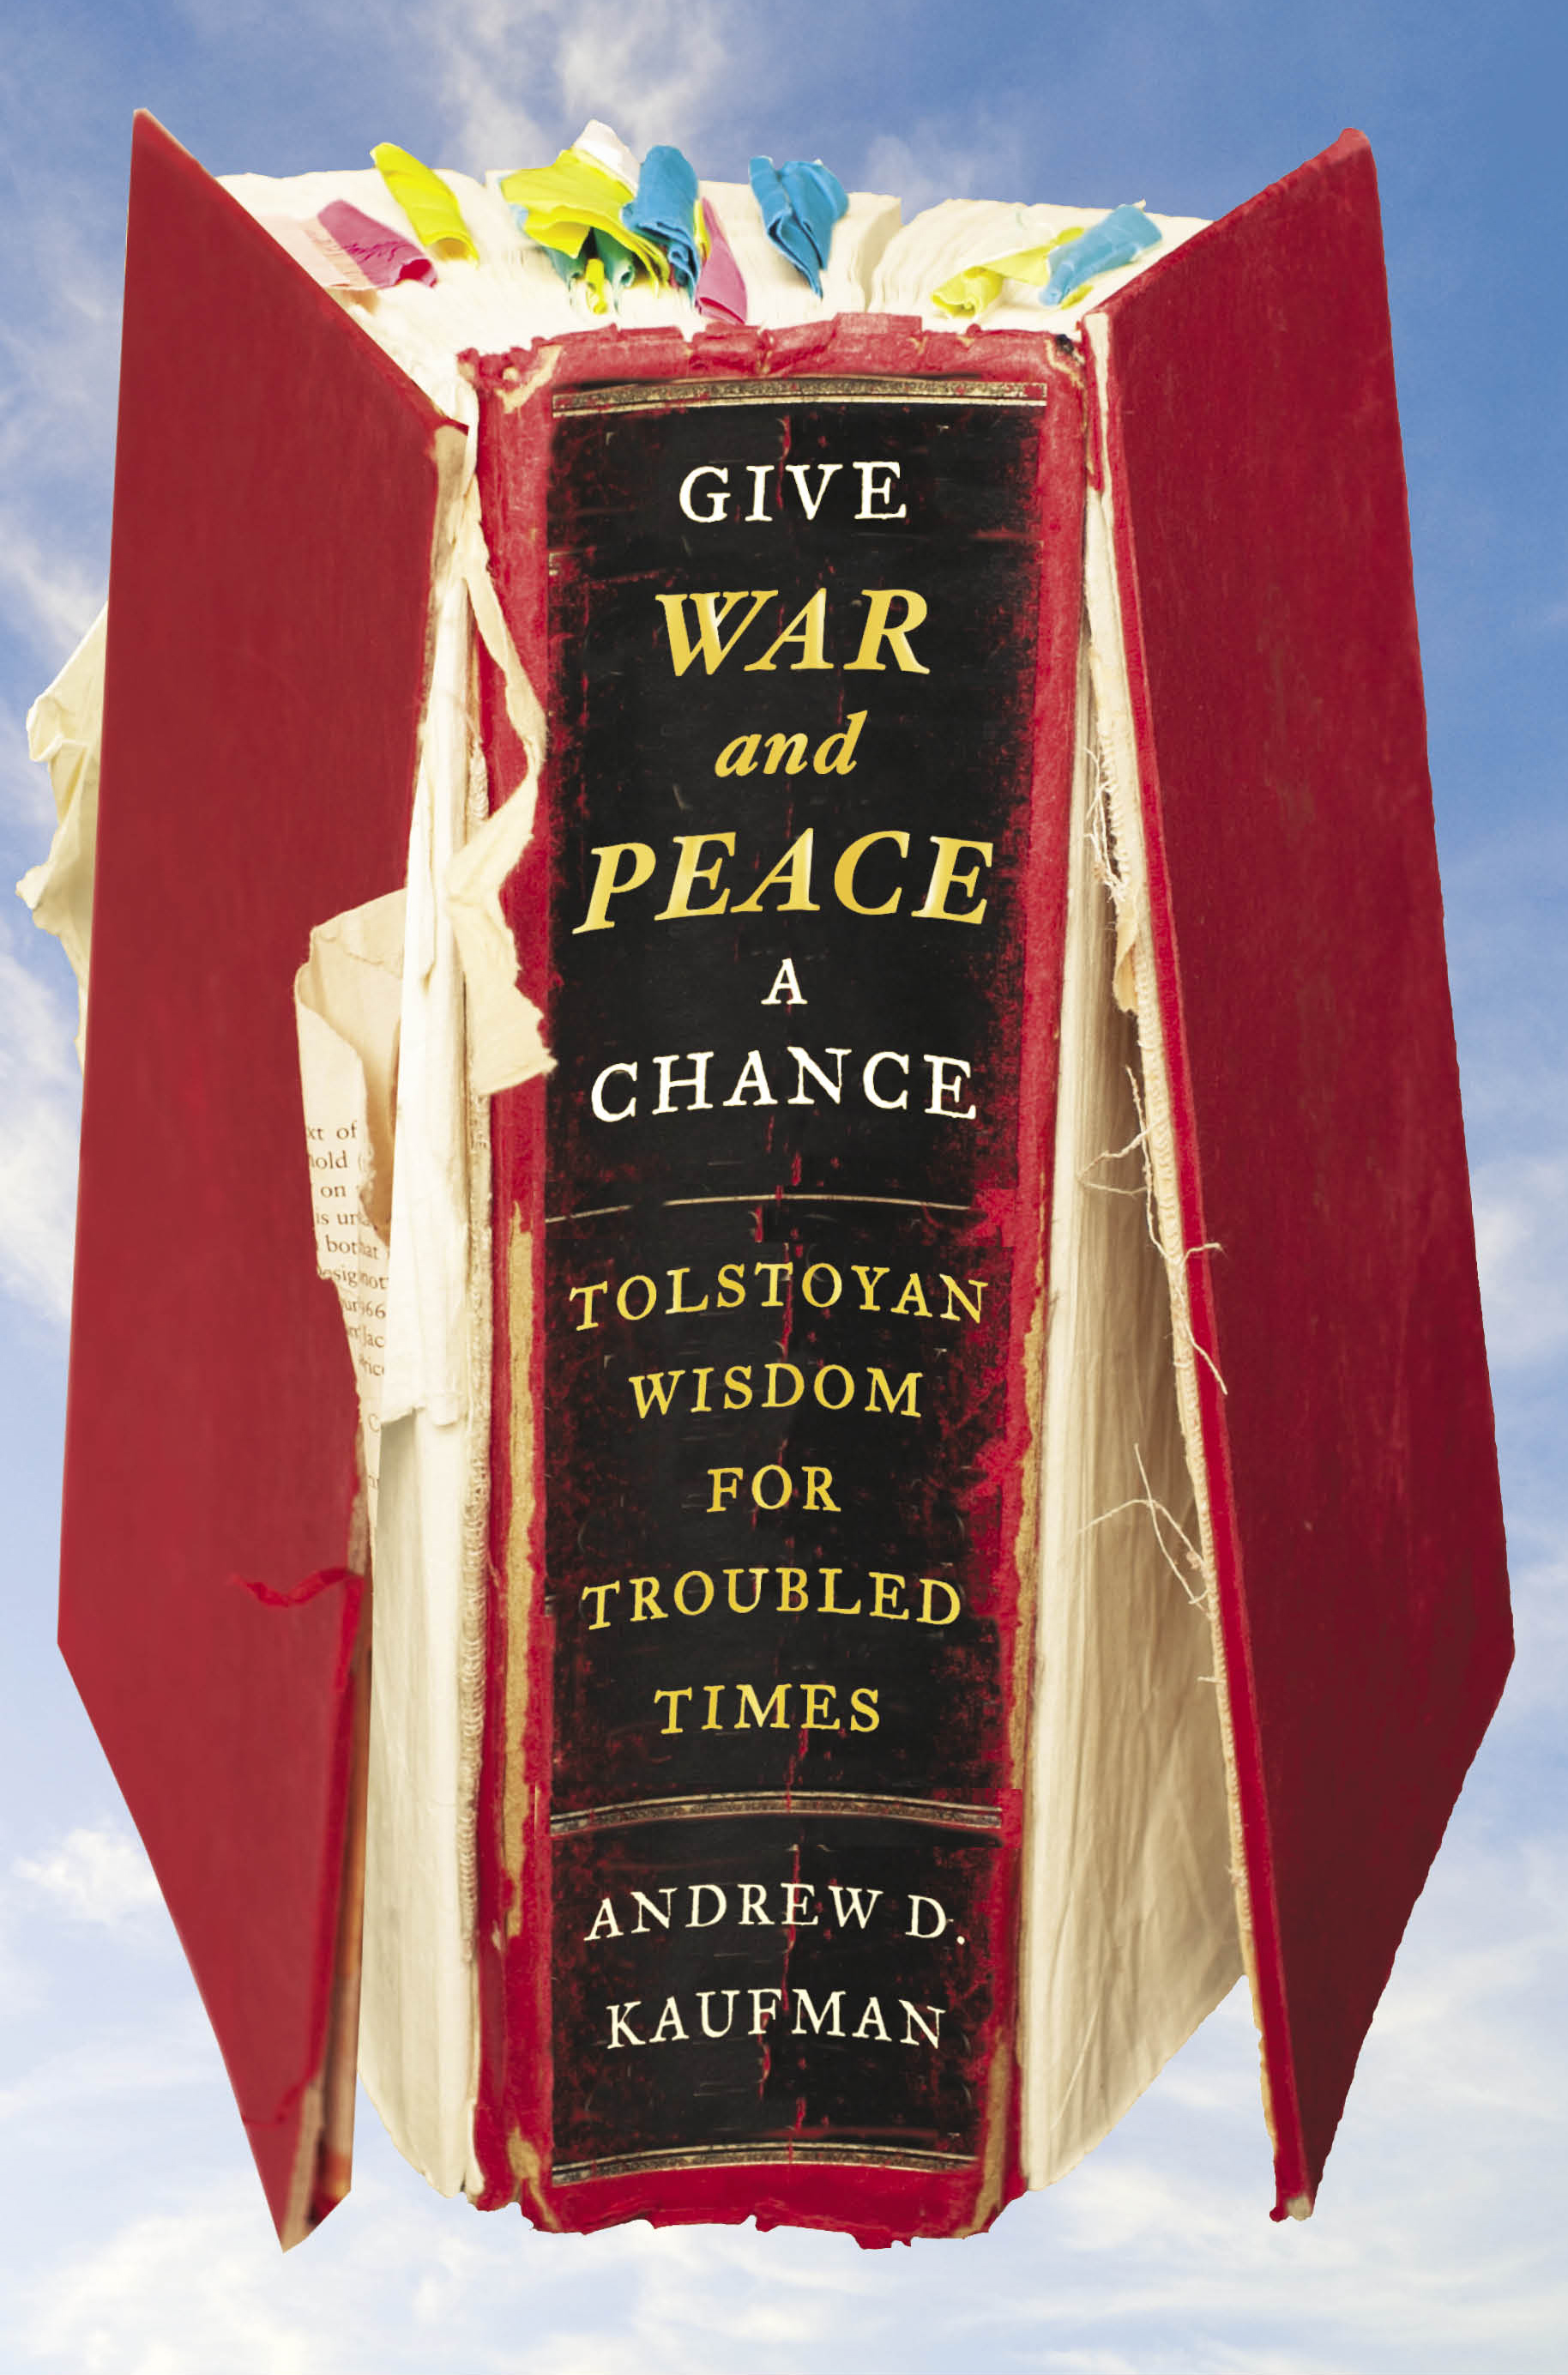 Give war and peace a chance 9781451644708 hr